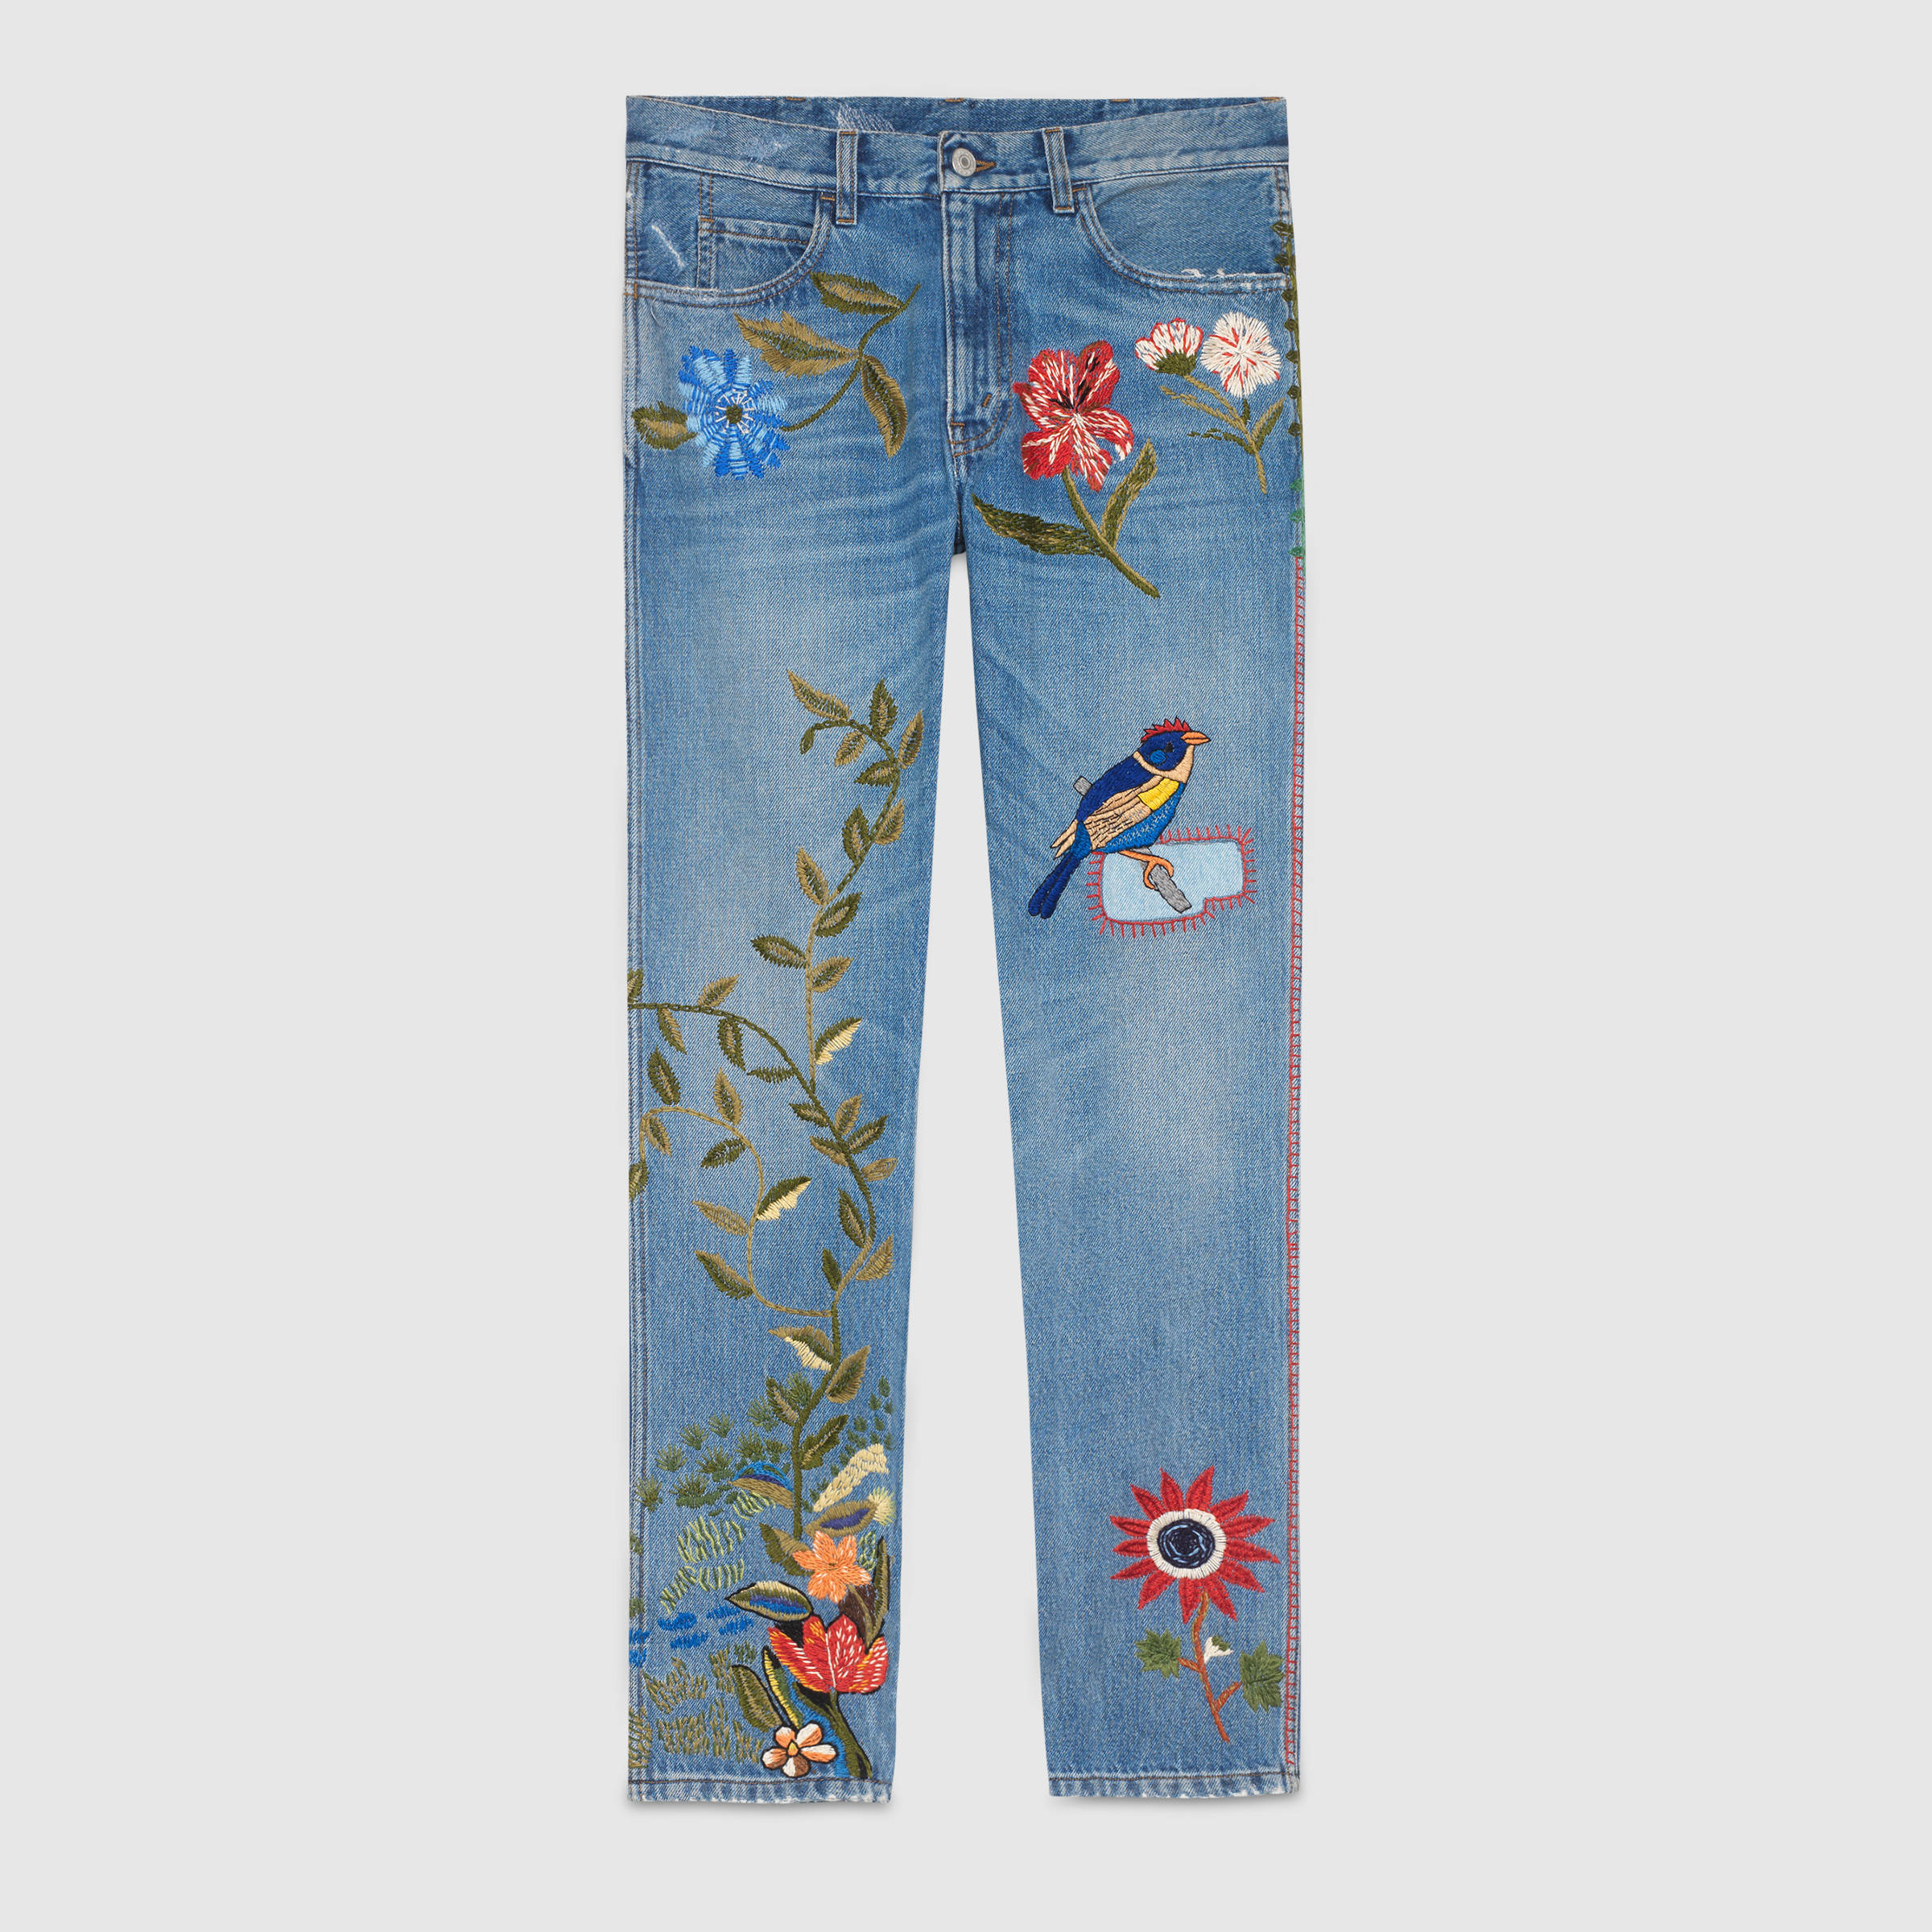 Embroidered denim by Gucci